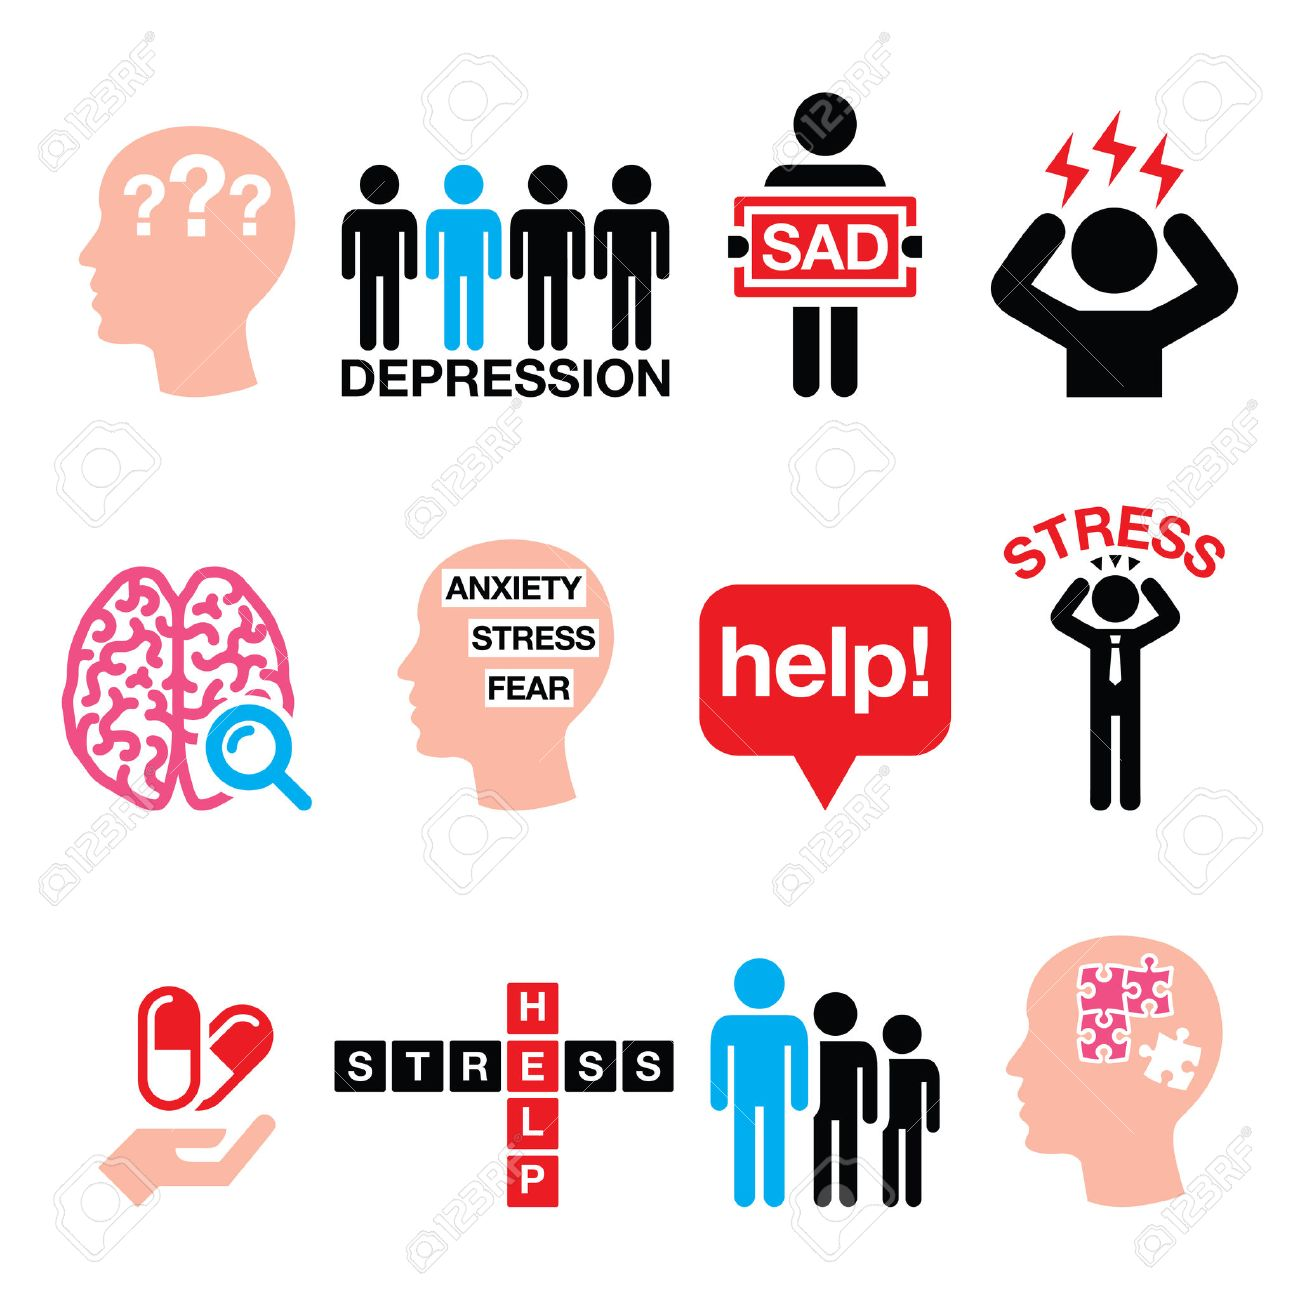 Depression Stress Icons Set Mental Health Concept Royalty Free